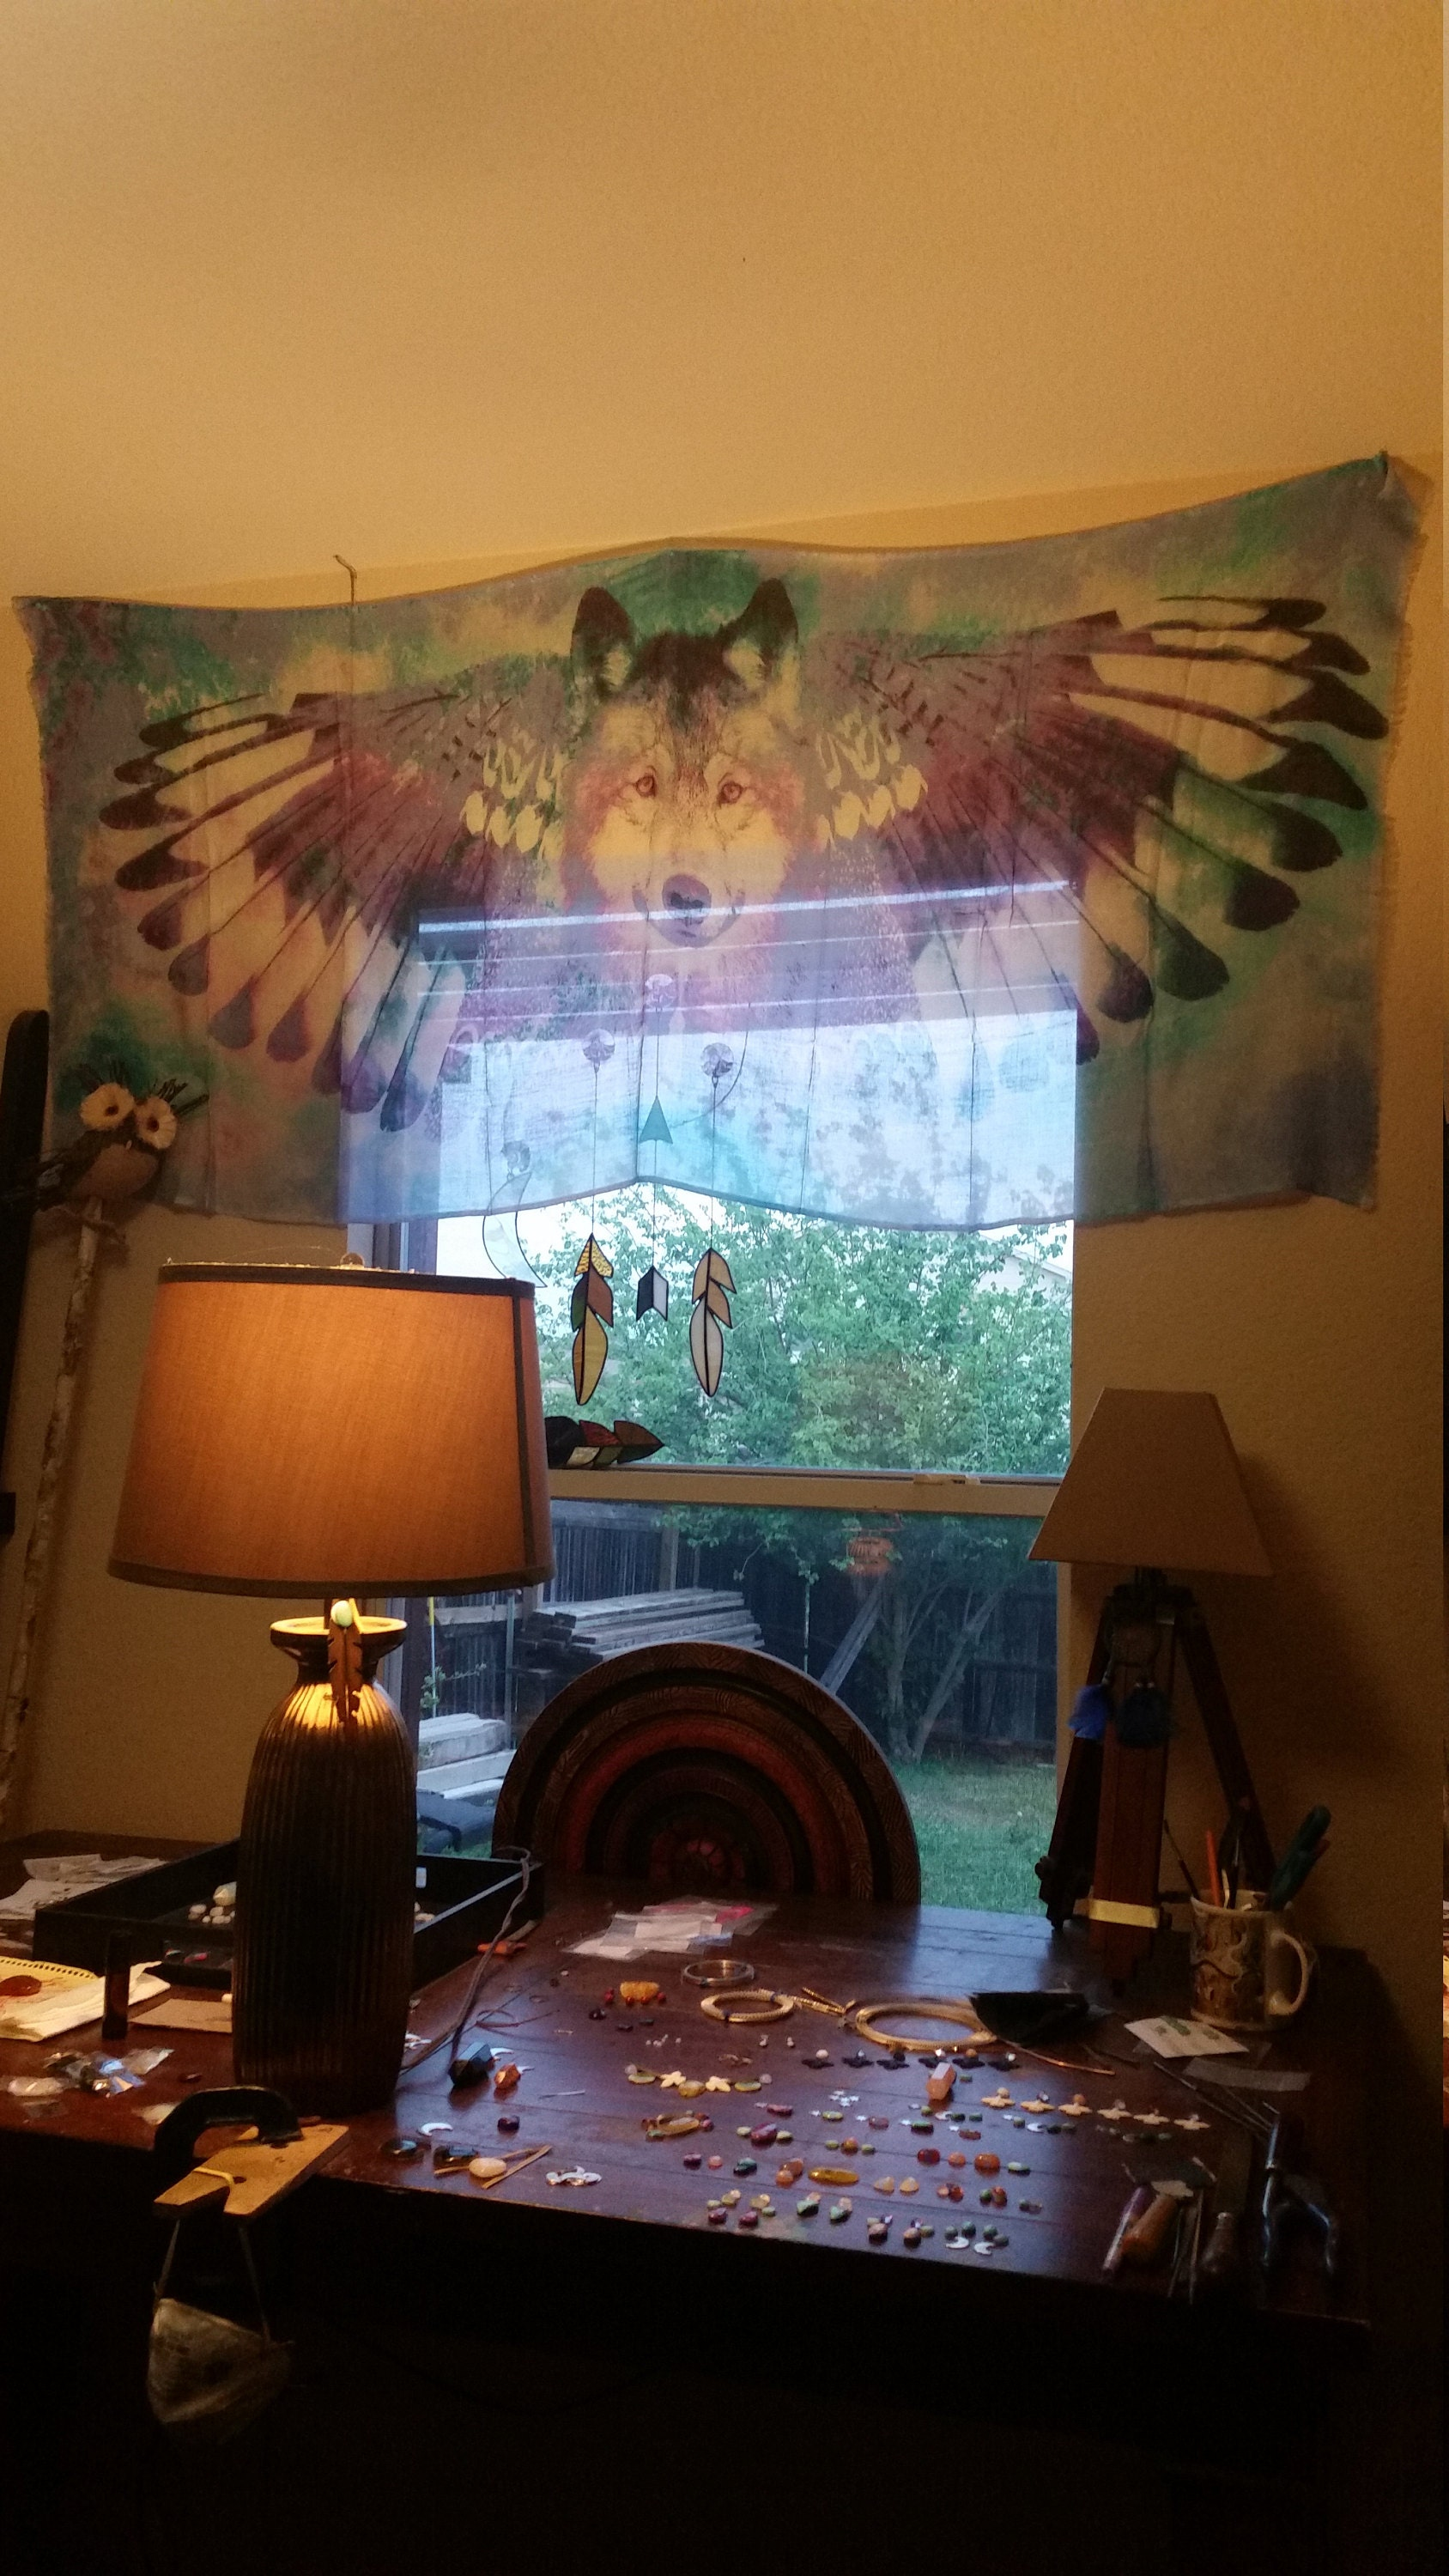 Cyn Hendry-Hurtado added a photo of their purchase